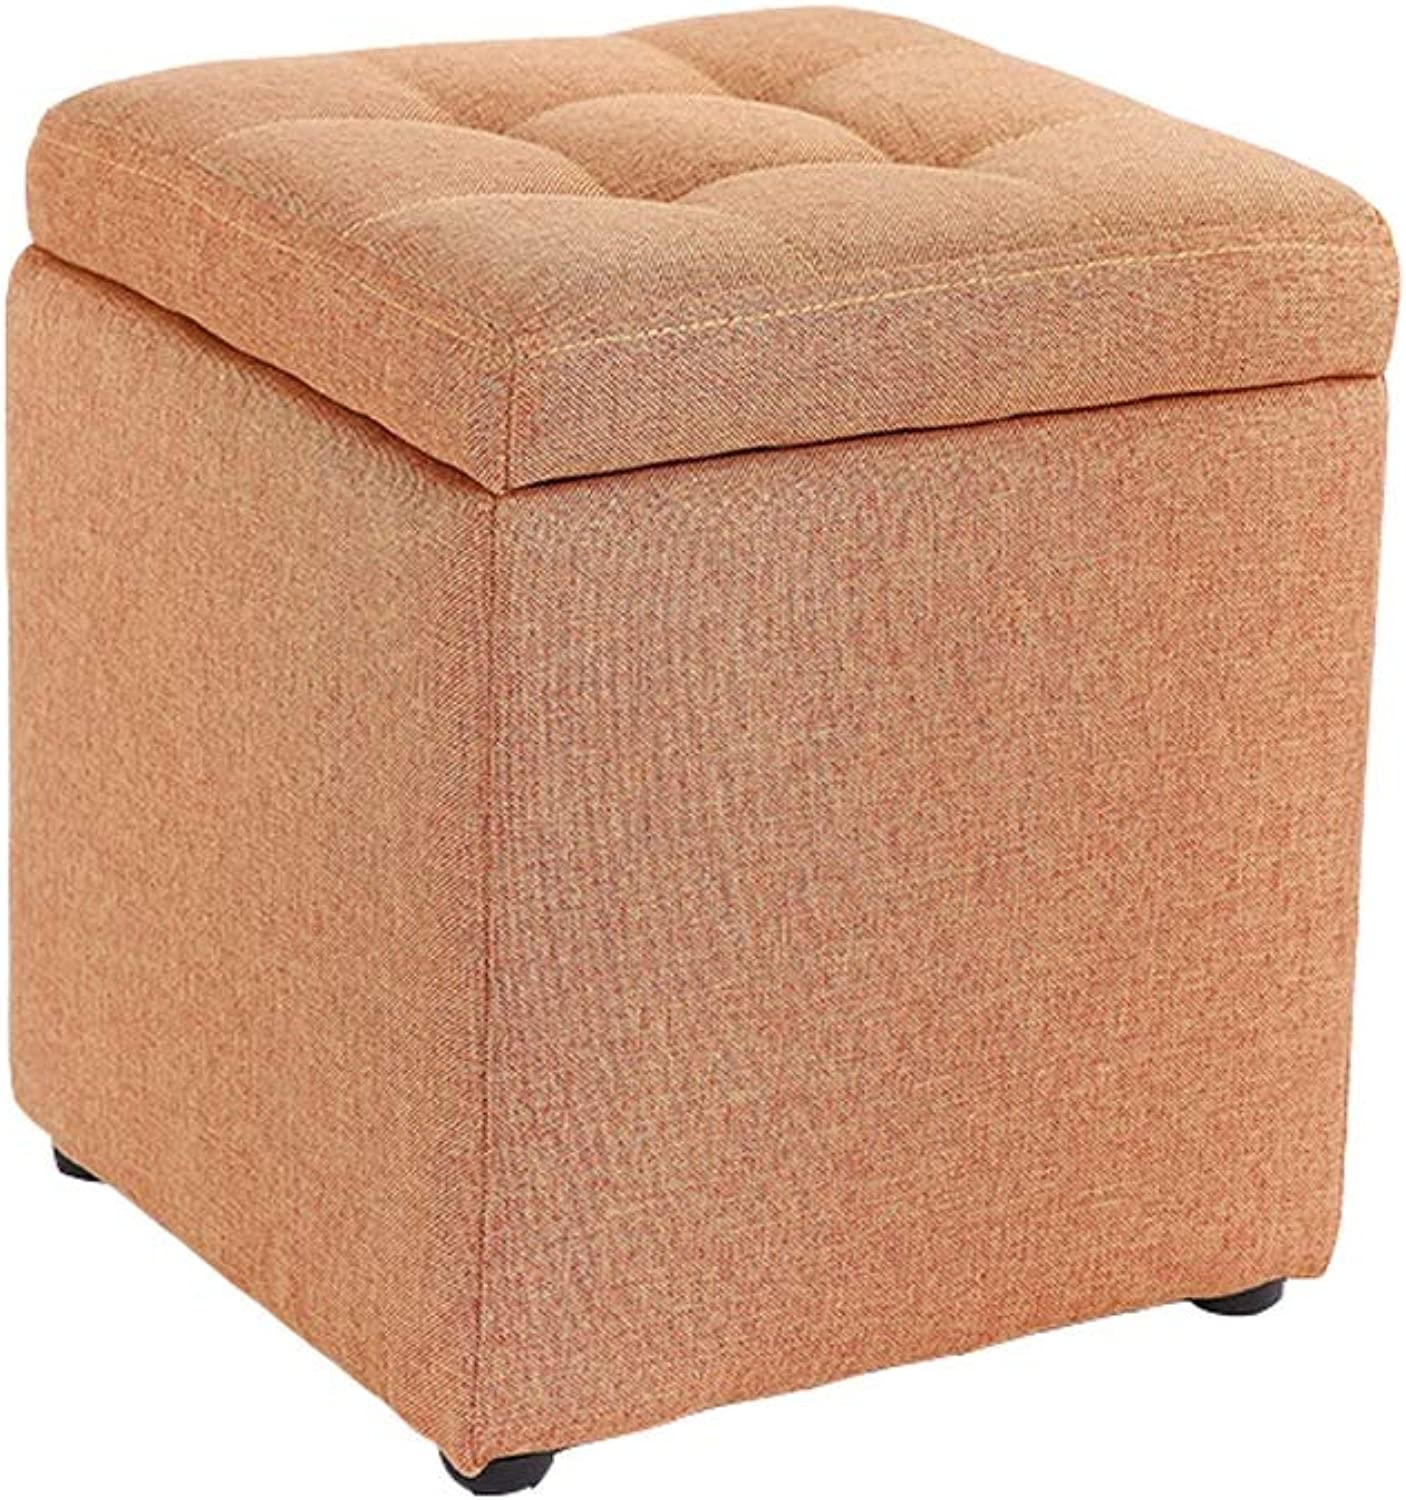 JiaJia- Storage Stool - Multi-Function Simple Fabric Storage Stool Multi-color Optional Non-Slip Storage Square Stool Footstool Sofa Stool Storage stools for Living Room (color   A)